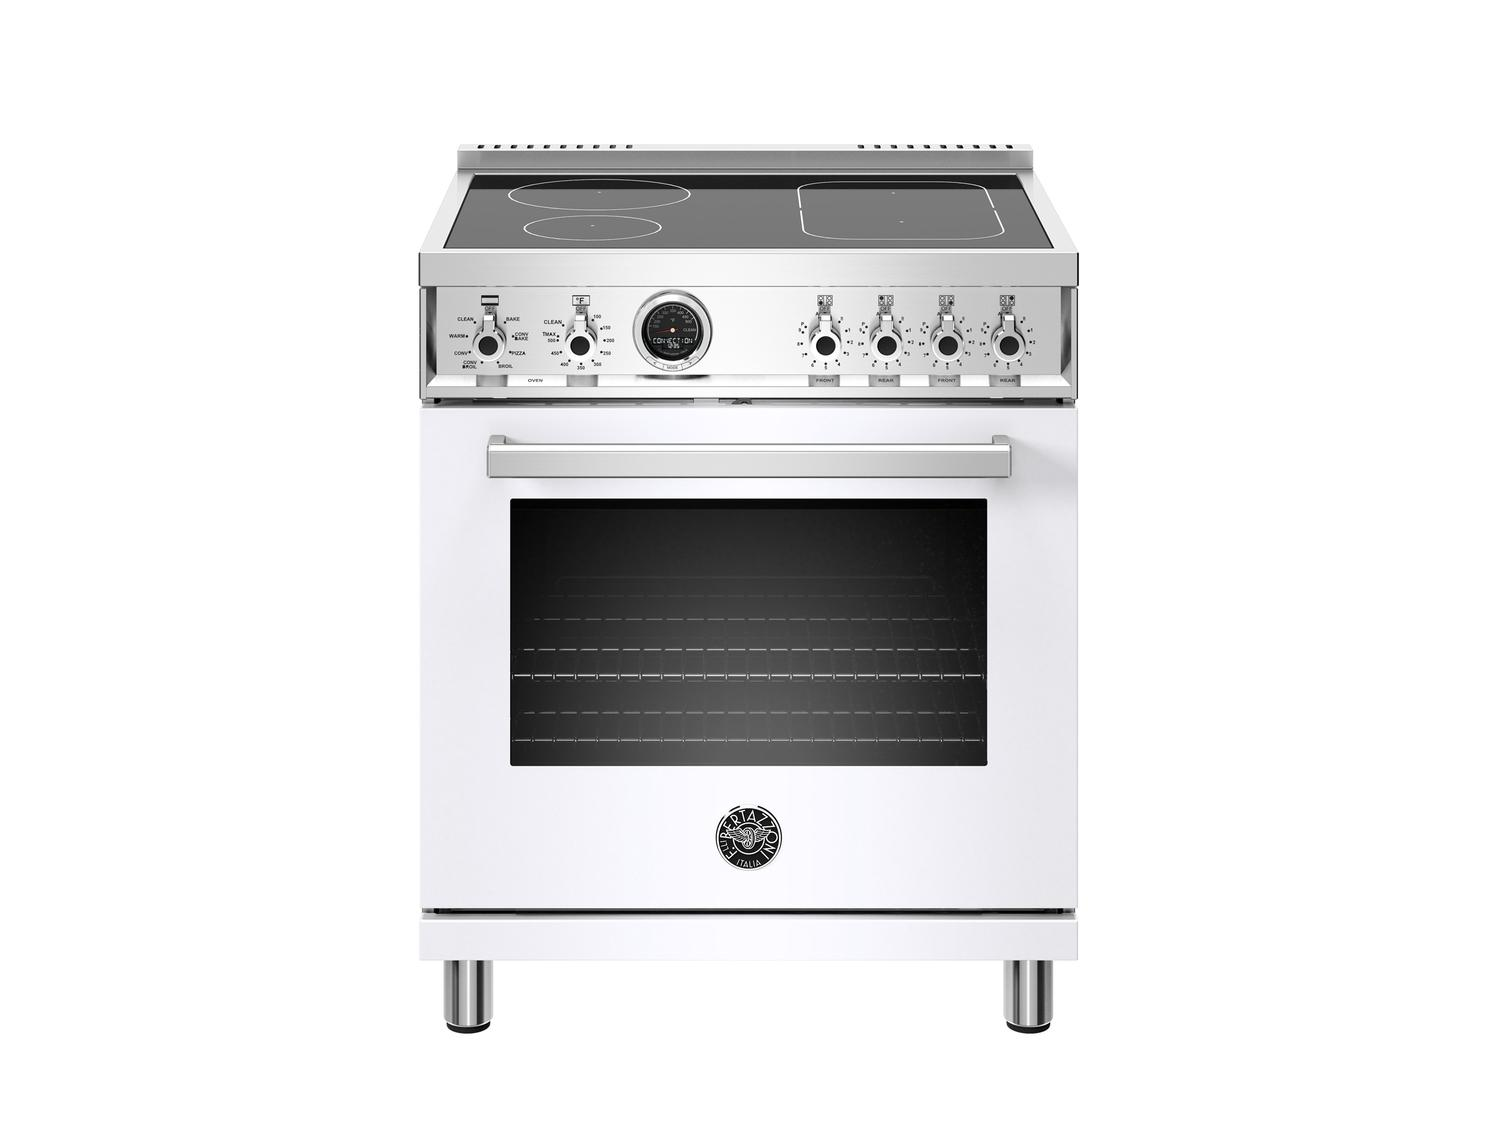 Bertazzoni30 Inch Induction Range, 4 Heating Zones, Electric Self-Clean Oven Bianco